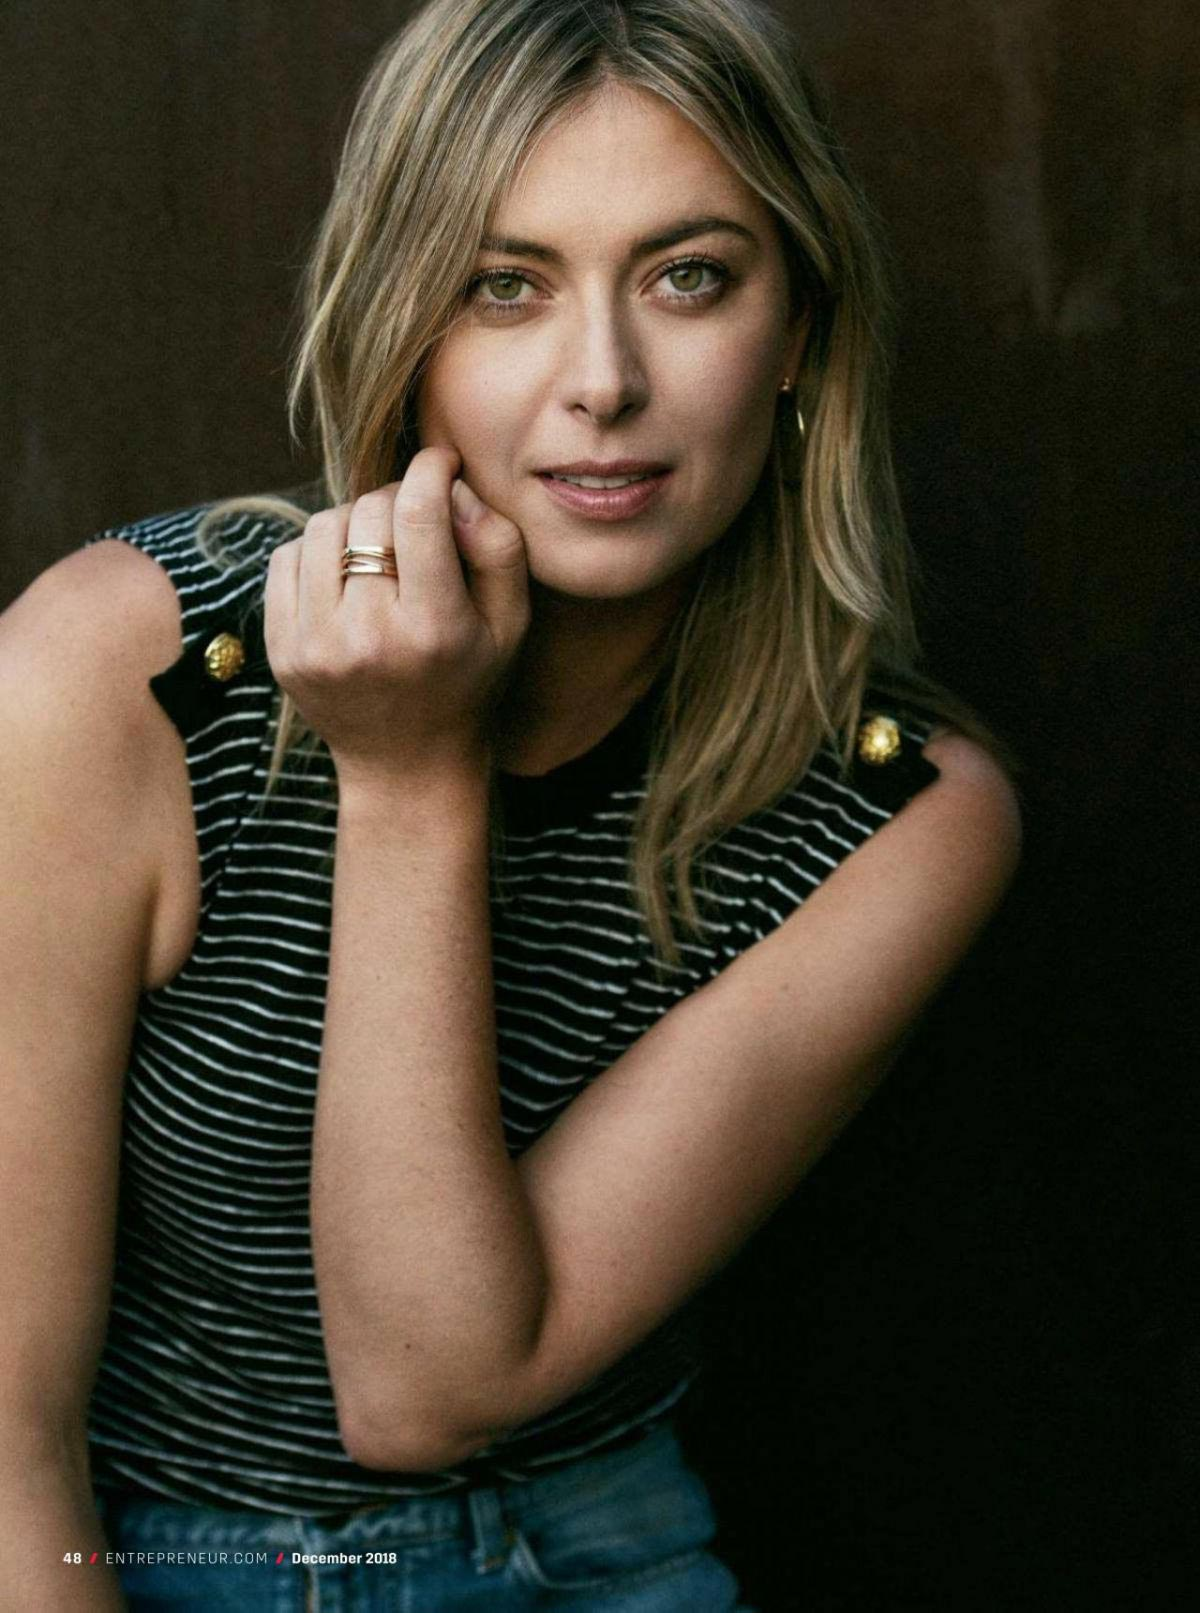 Maria Sharapova in Entrepreneur Magazine, December 2018 1